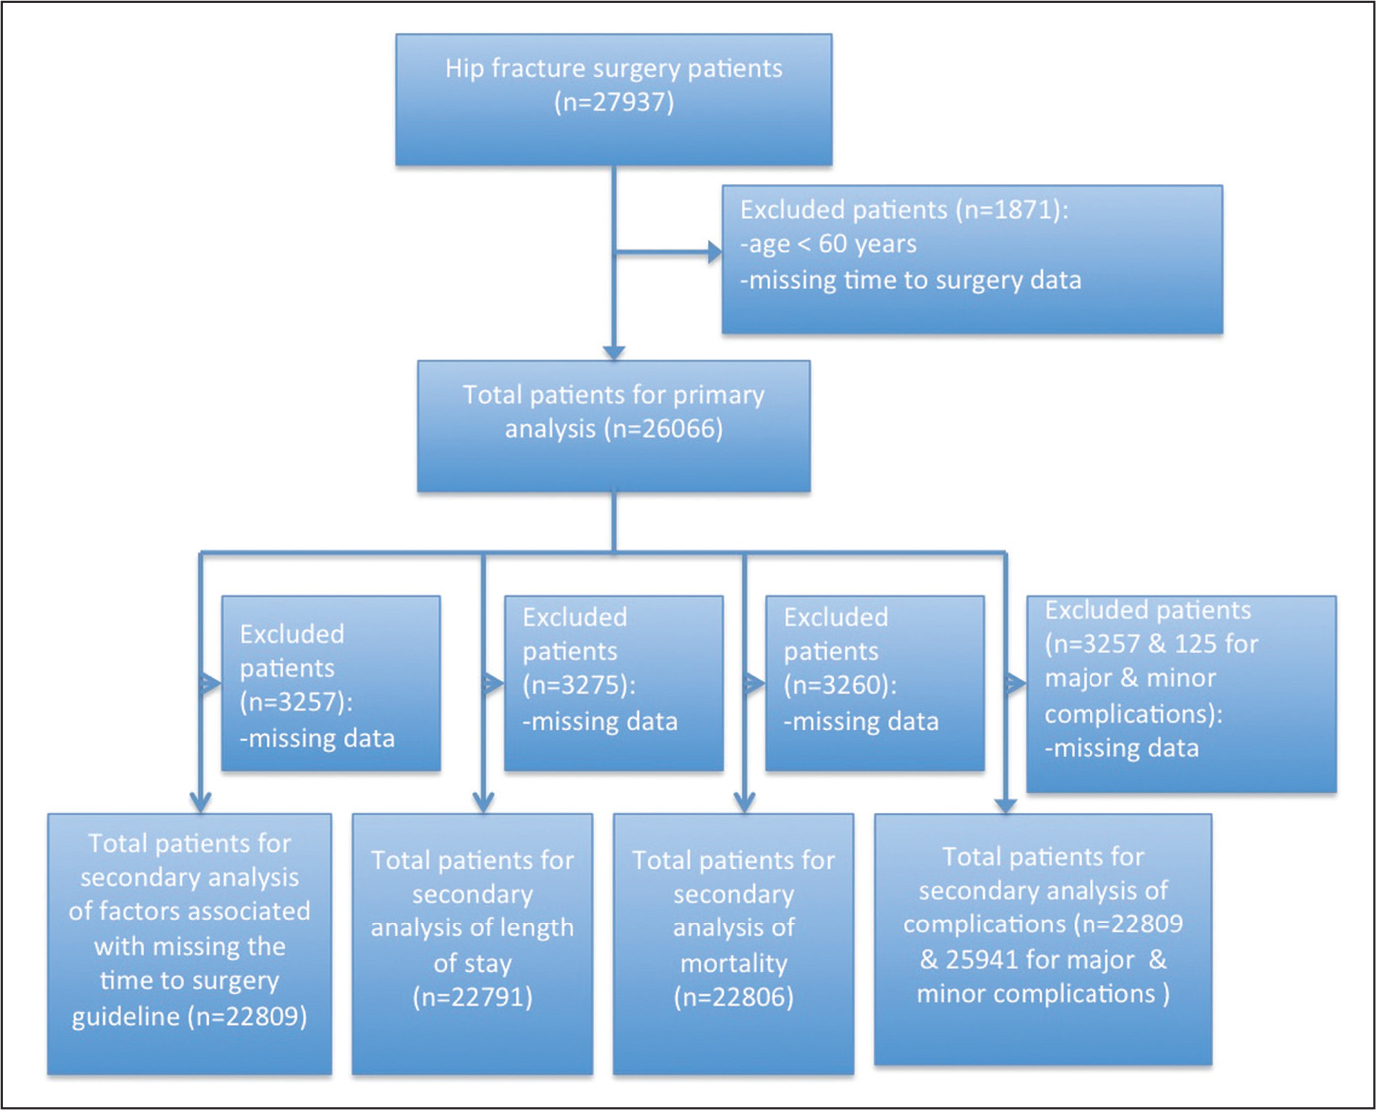 Consolidated Standards of Reporting Trials (CONSORT) diagram outlining patient selection.